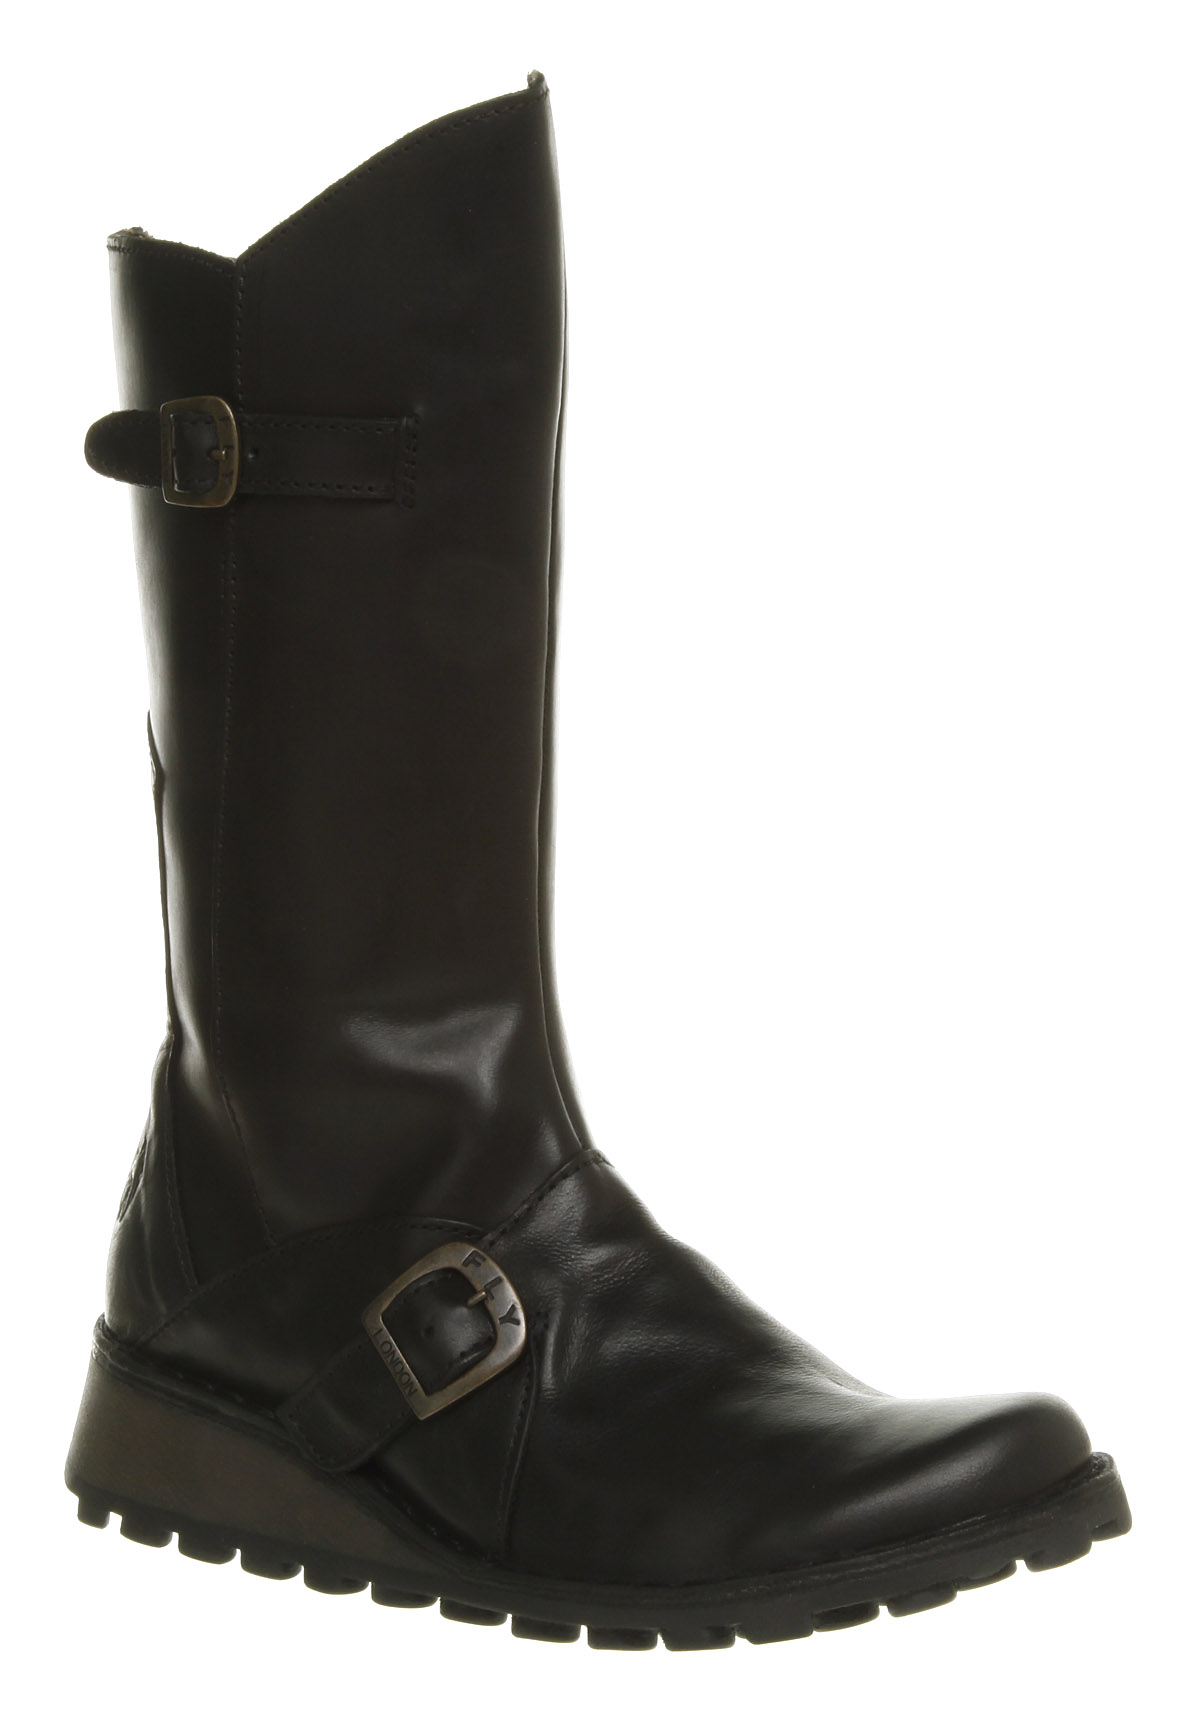 Womens-Fly-London-Mes-Wedge-Calf-Boot-Black-Rugged-Boots